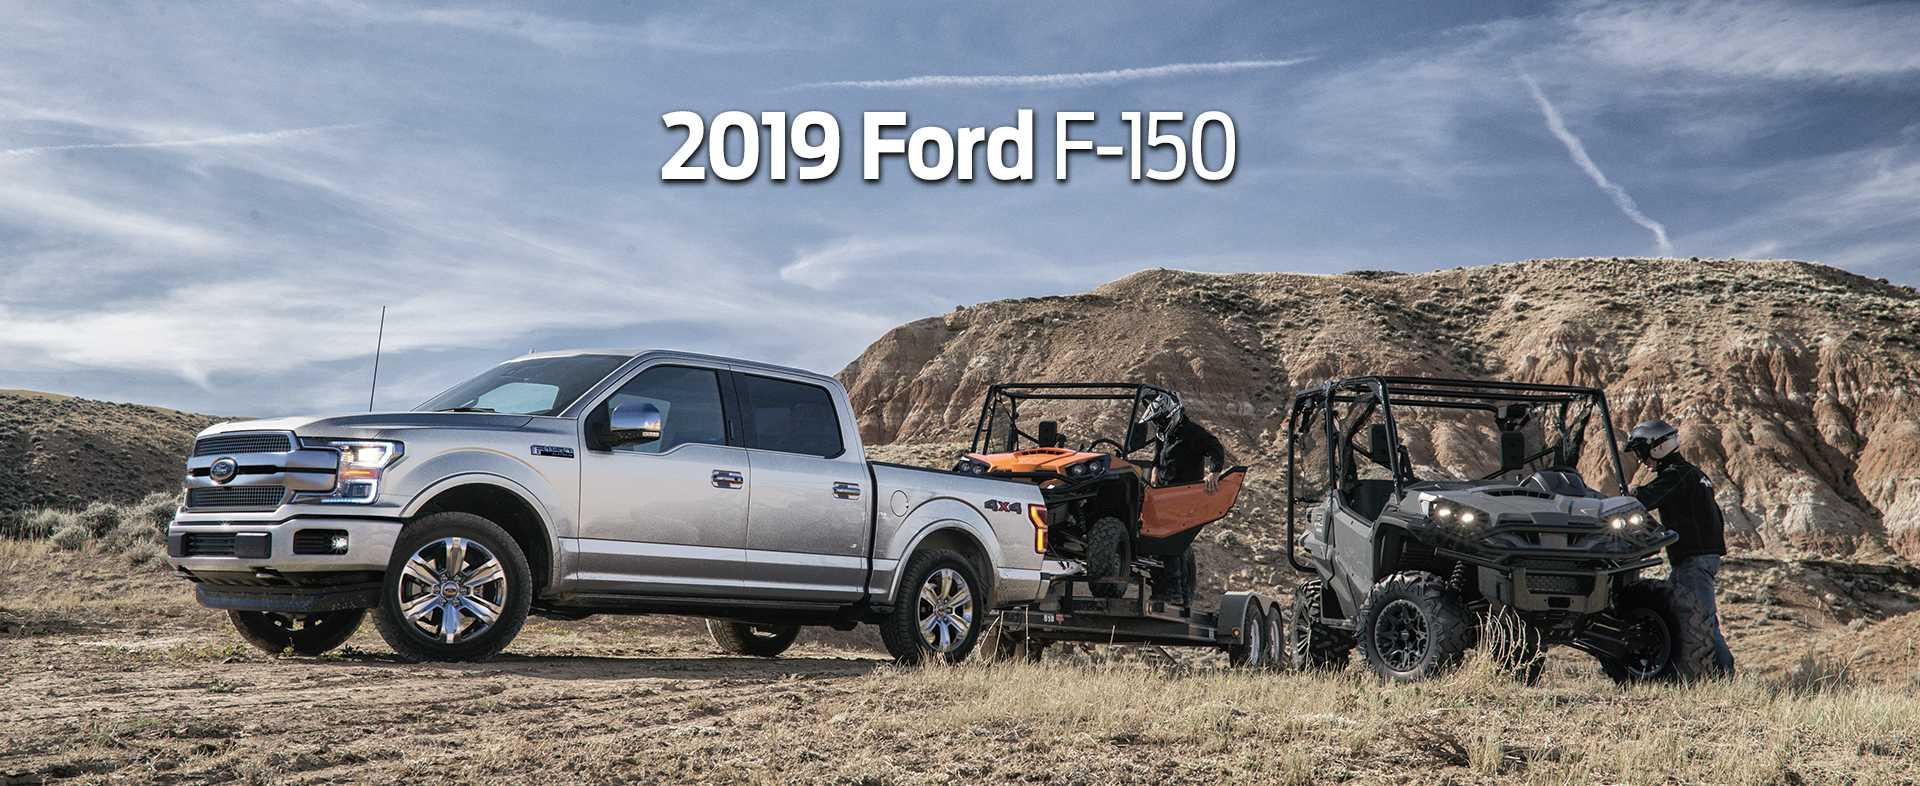 New & Used Ford Cars, Trucks & SUVs Dealership in Victoria